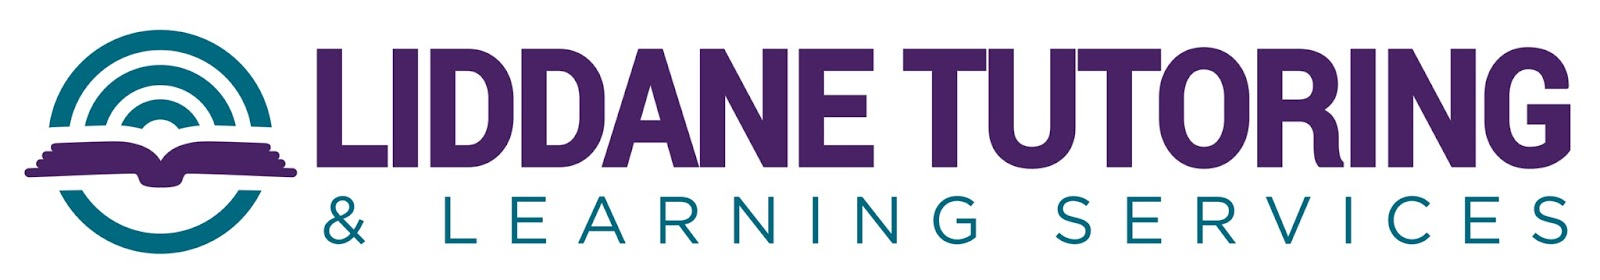 Liddane Tutoring and Learning Services - Jobs: Elementary